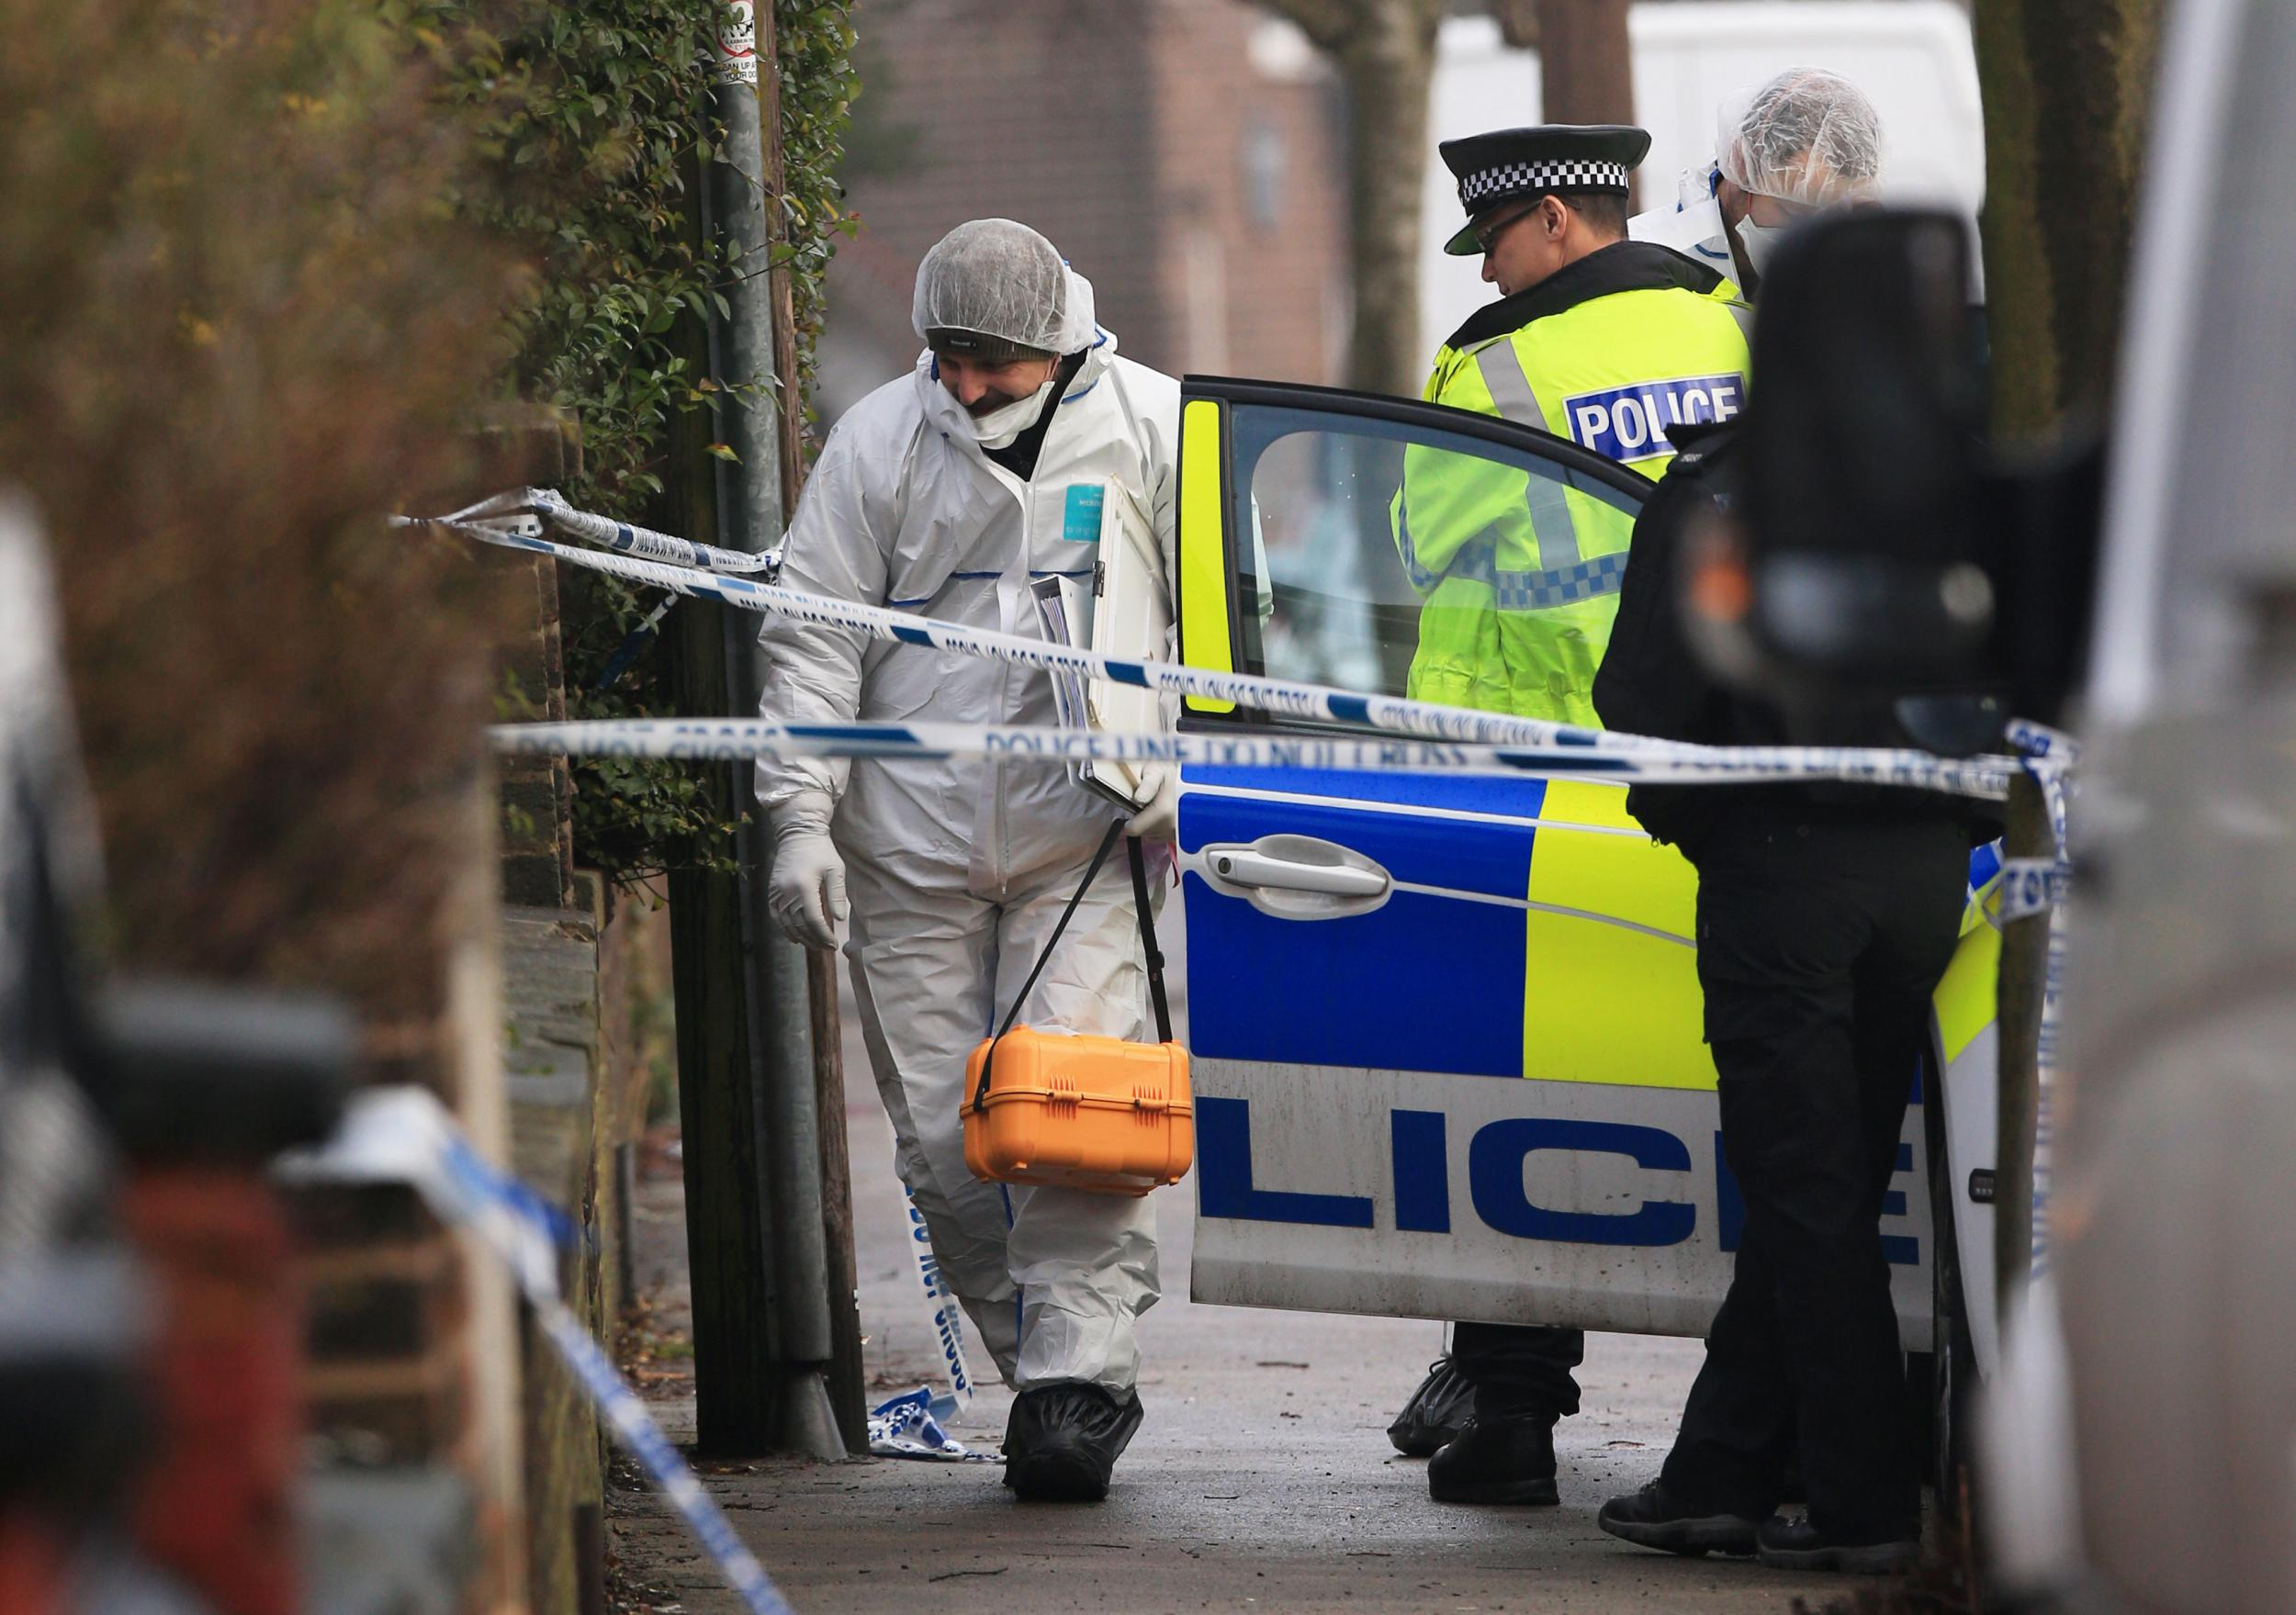 Stockport murder: 63-year-old woman arrested after body found buried in garden